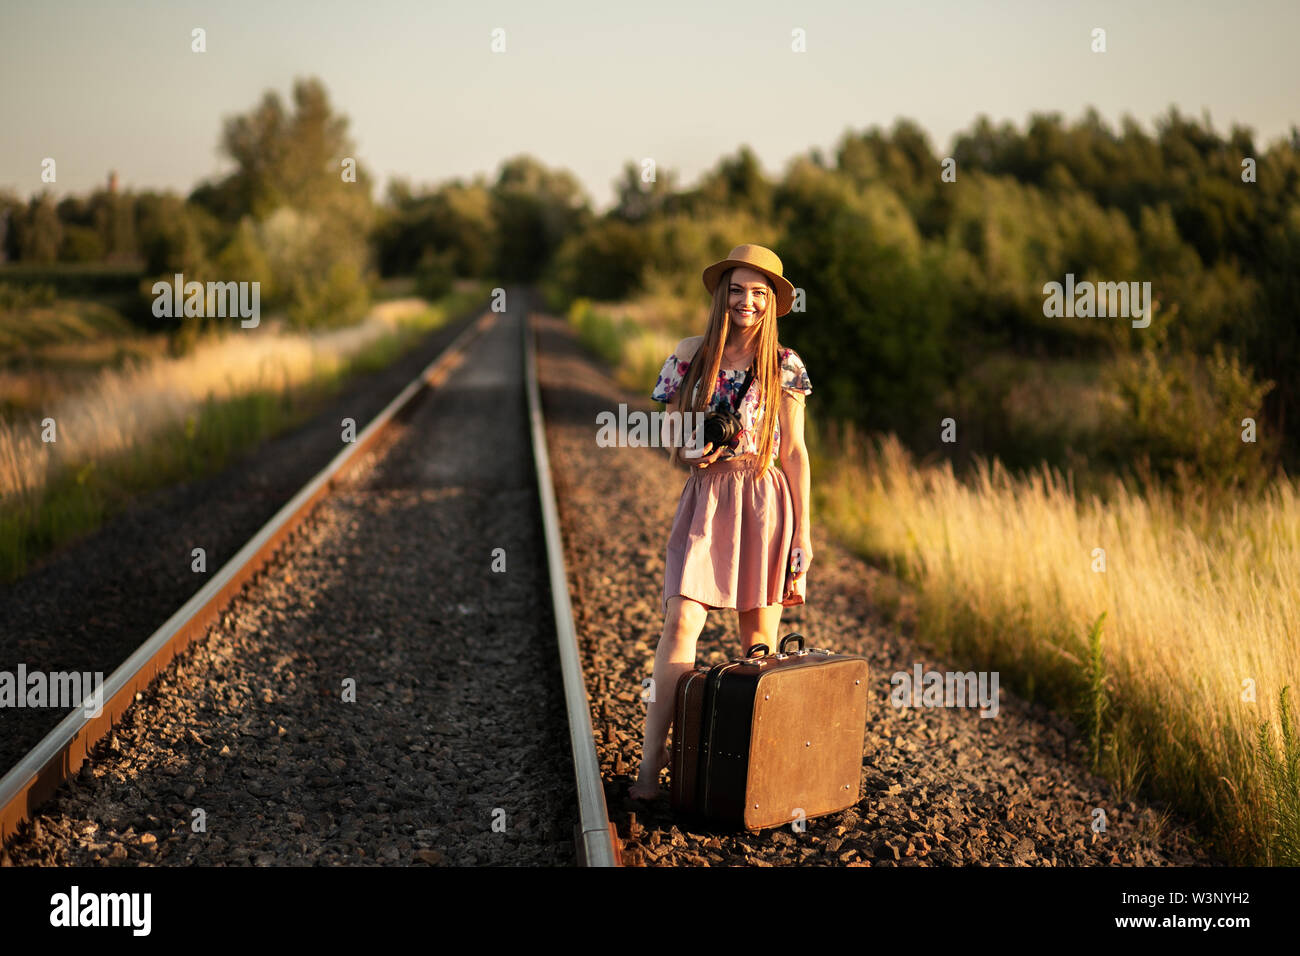 slim girl in a straw hat standing with suitcases on the railroad tracks, with a camera, smiling and dreaming. The concept of travel, happiness, freedo - Stock Image